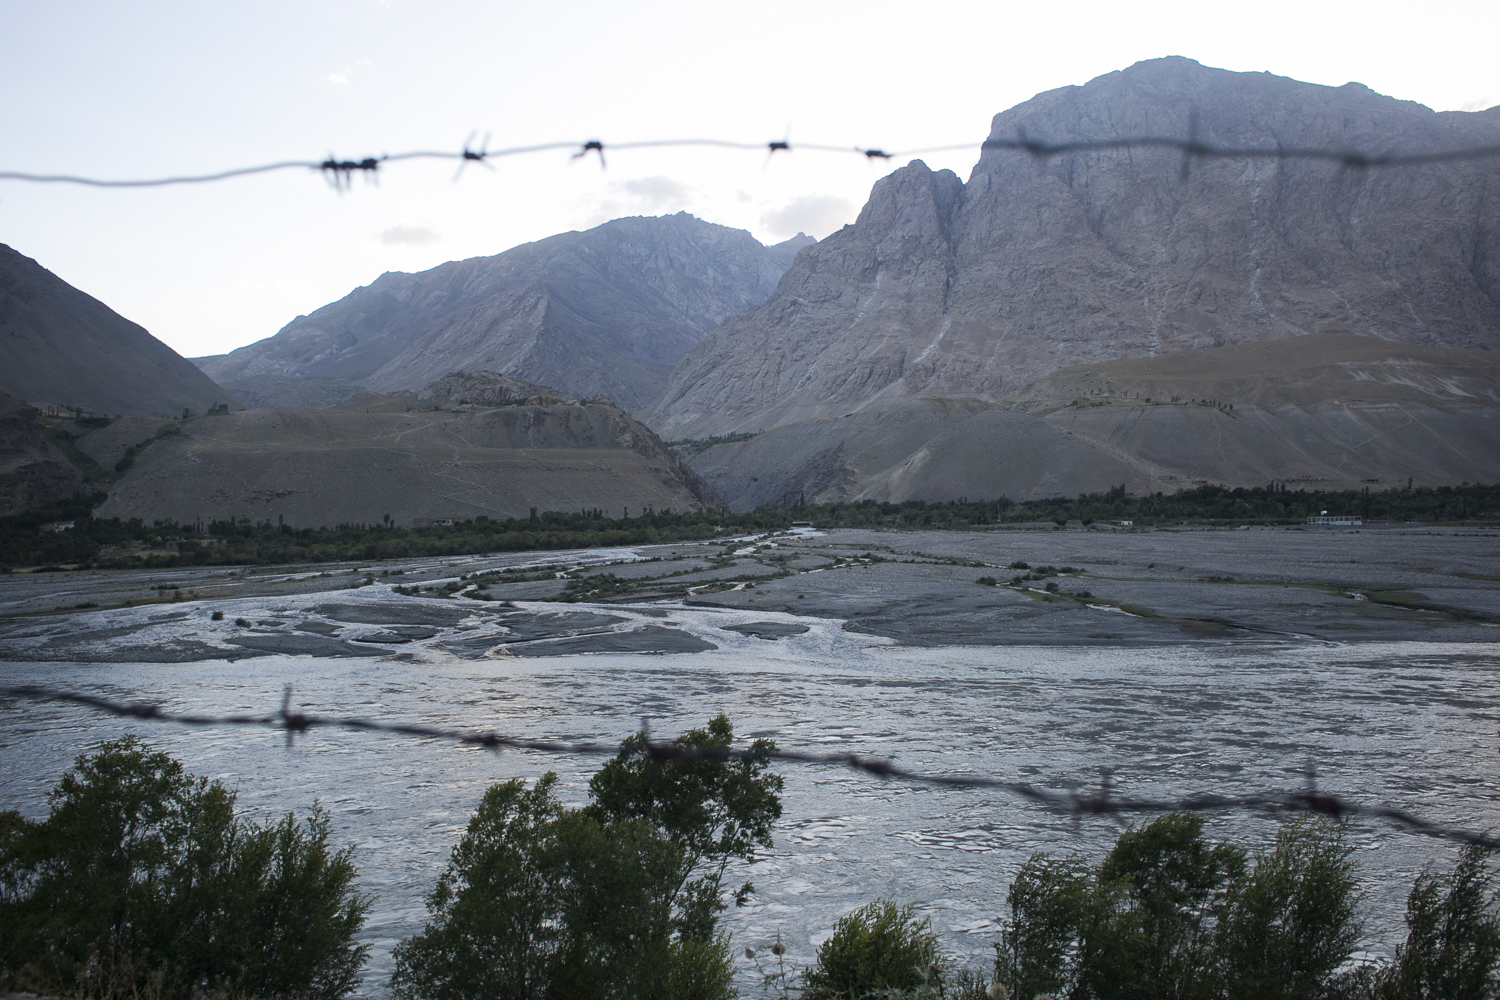 The Afghanistan-Tajikistan border stretches 1,300 kilometers and is thinly protected along many points. (Photo: David Trilling)